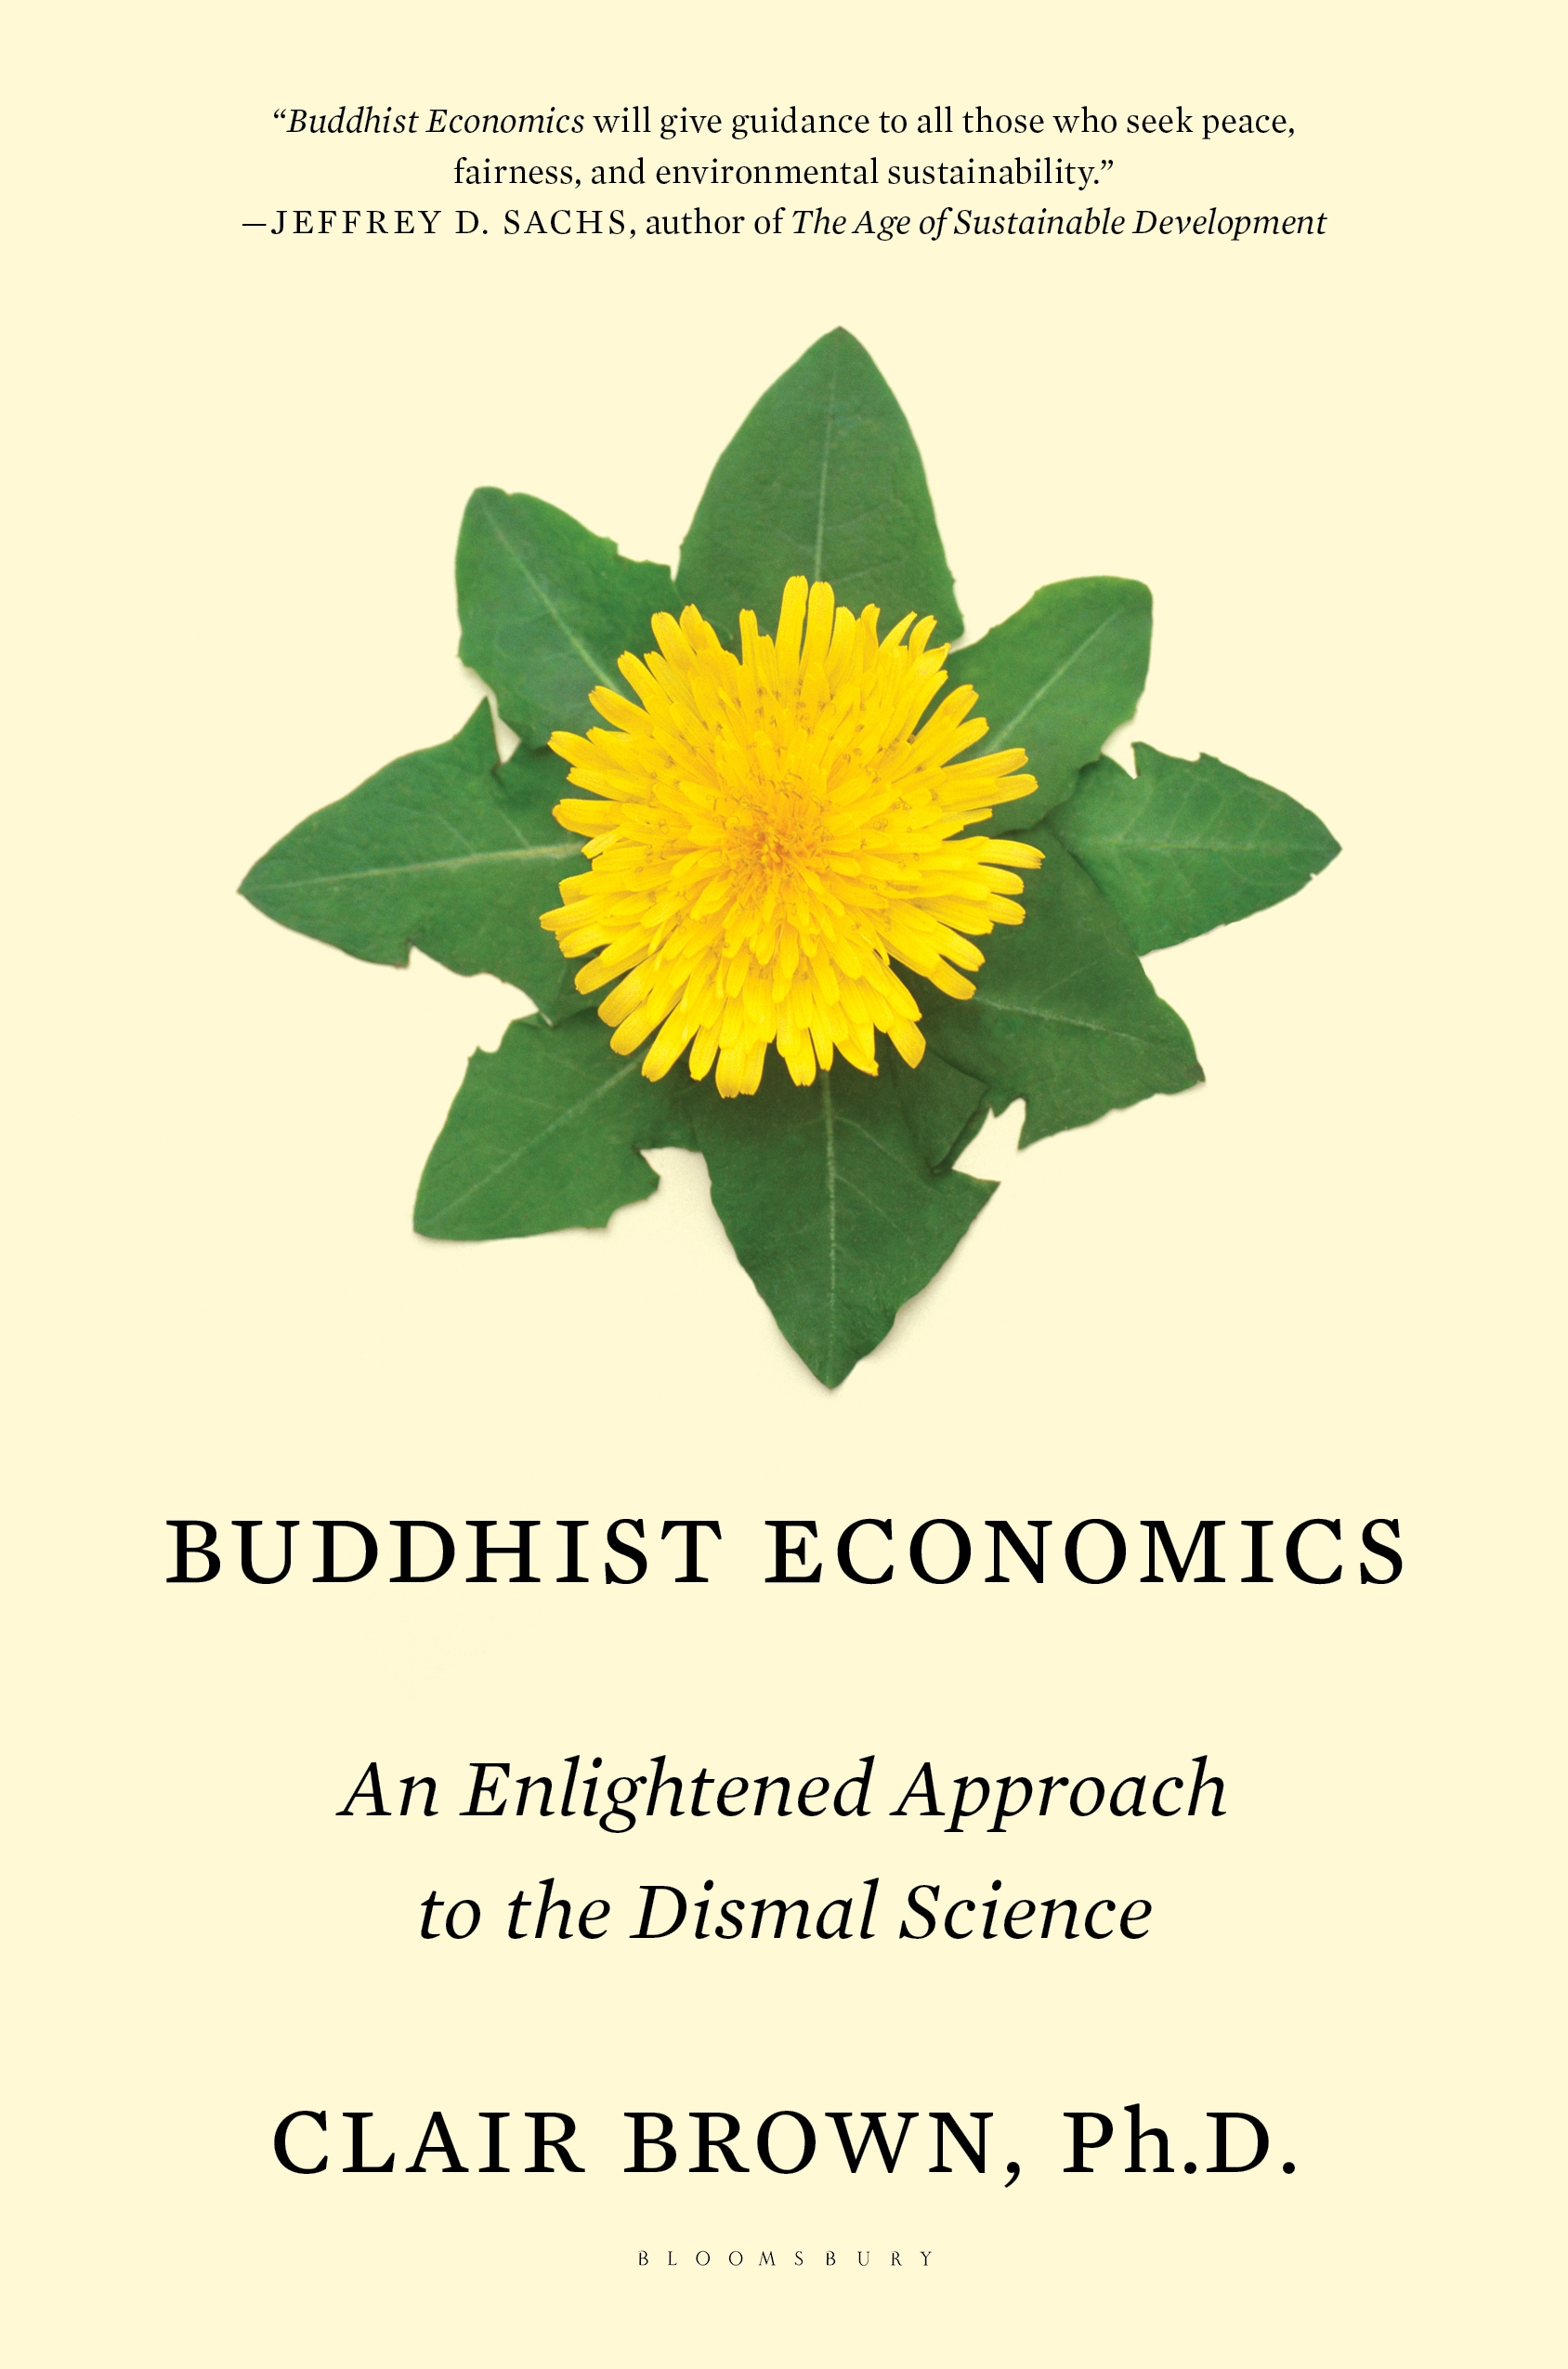 buddhist economics Clair brown argues for an economy that brings out the best in people, not the most self-centered and shortsighted.